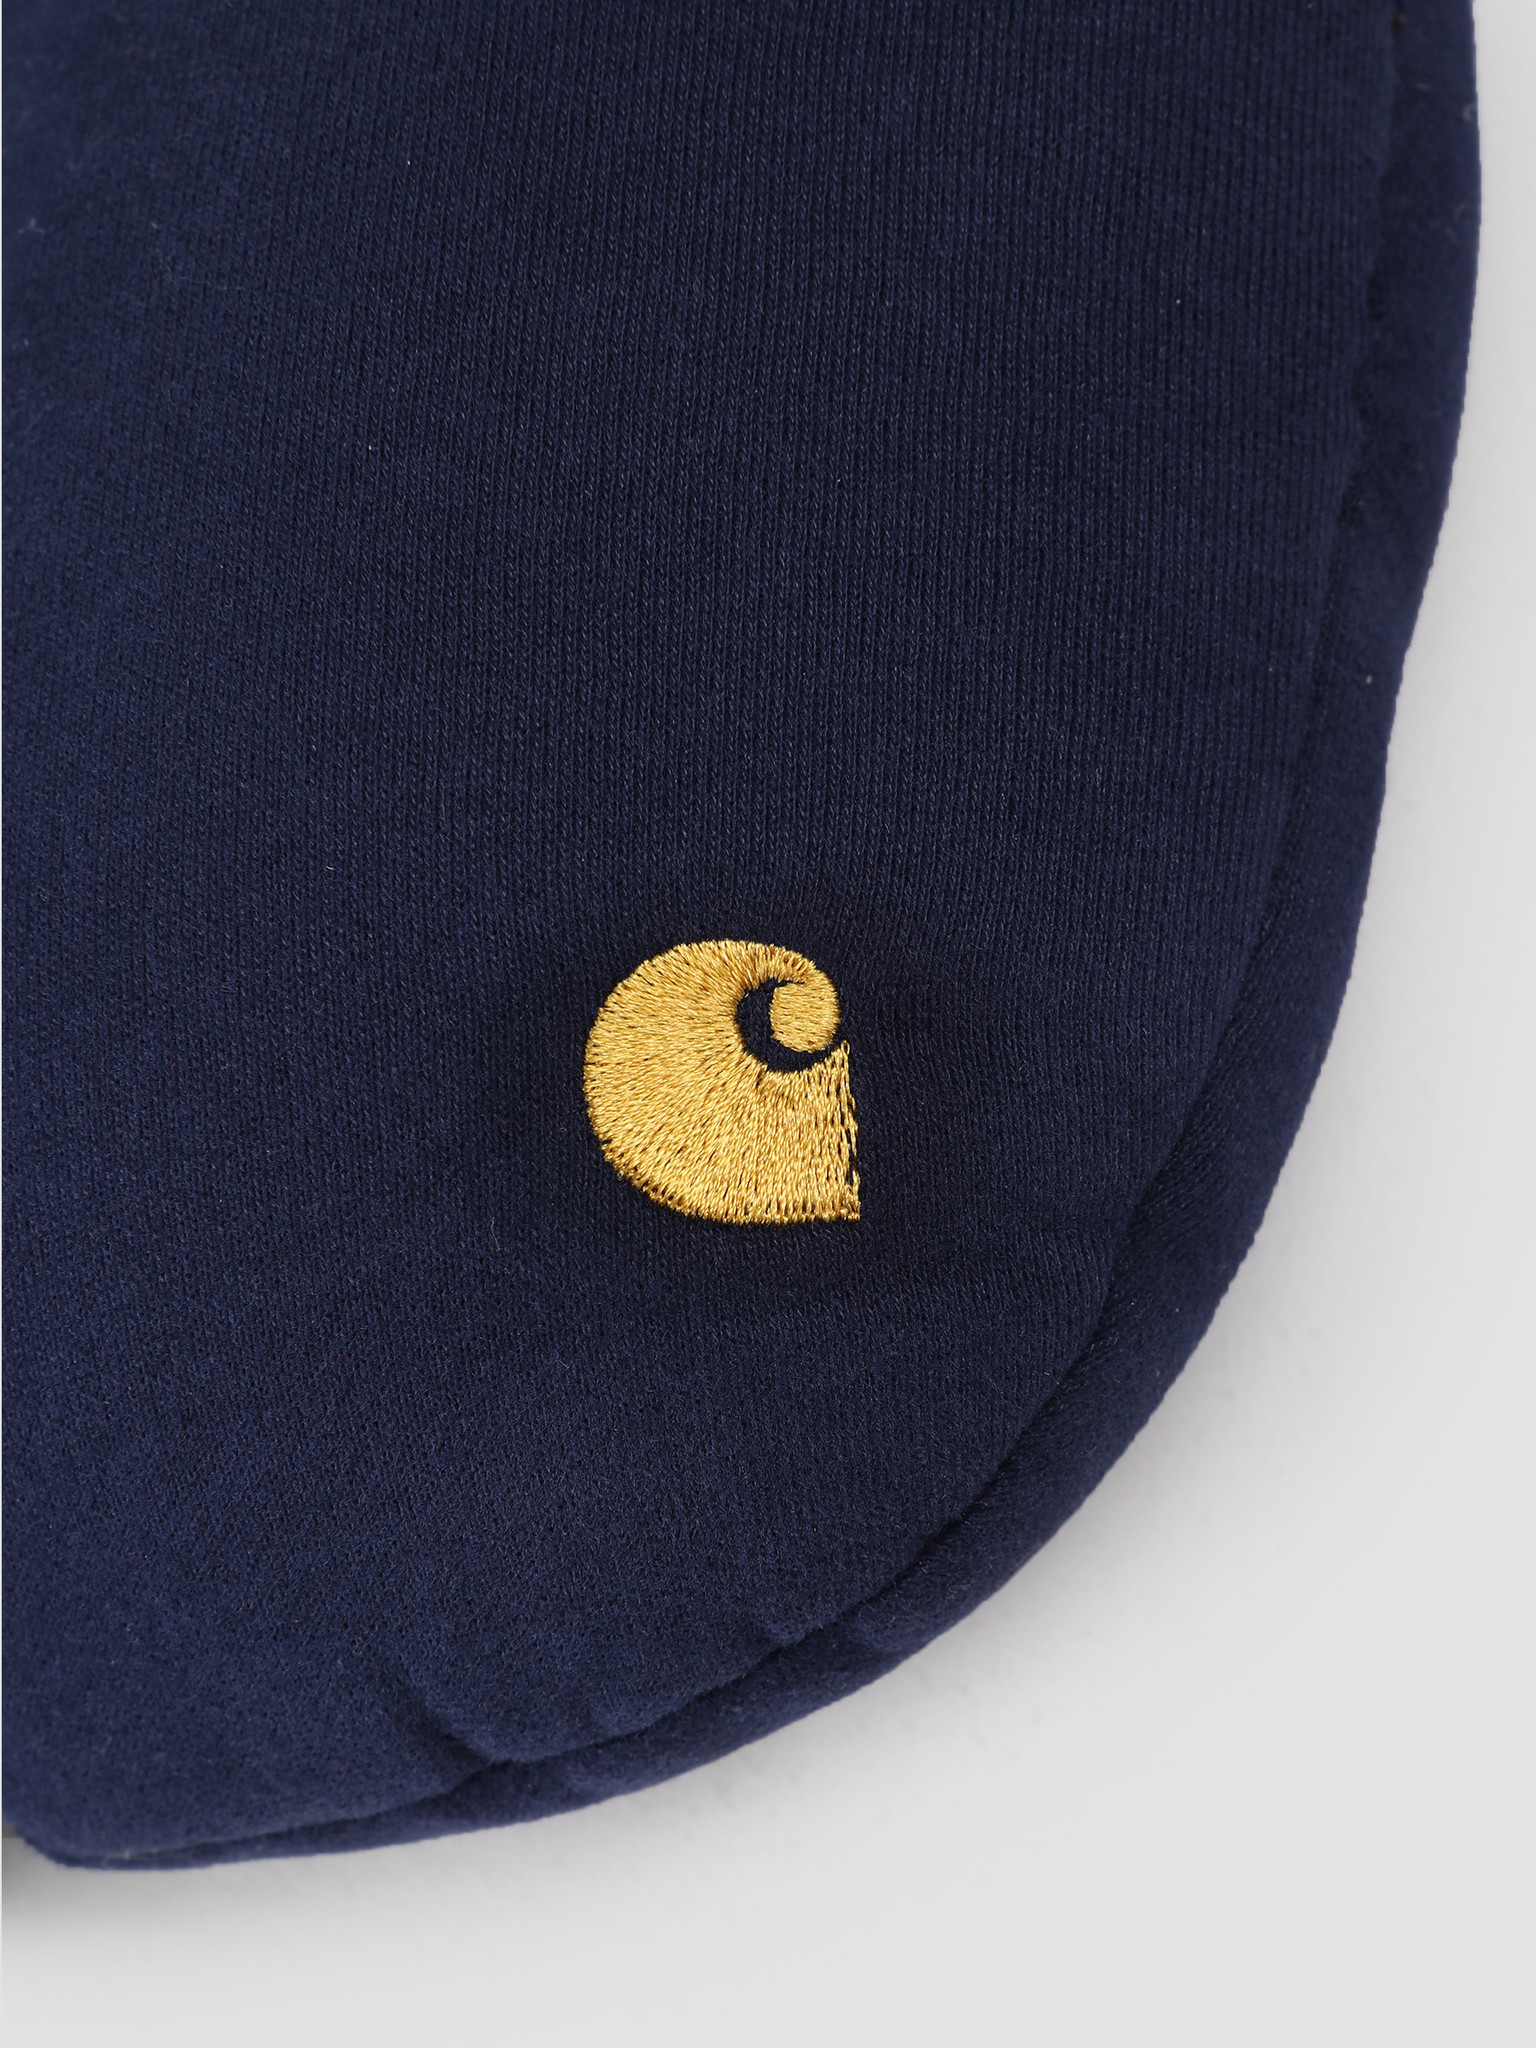 Carhartt WIP Carhartt WIP Chase Travel Pillow Navy Blue I026760